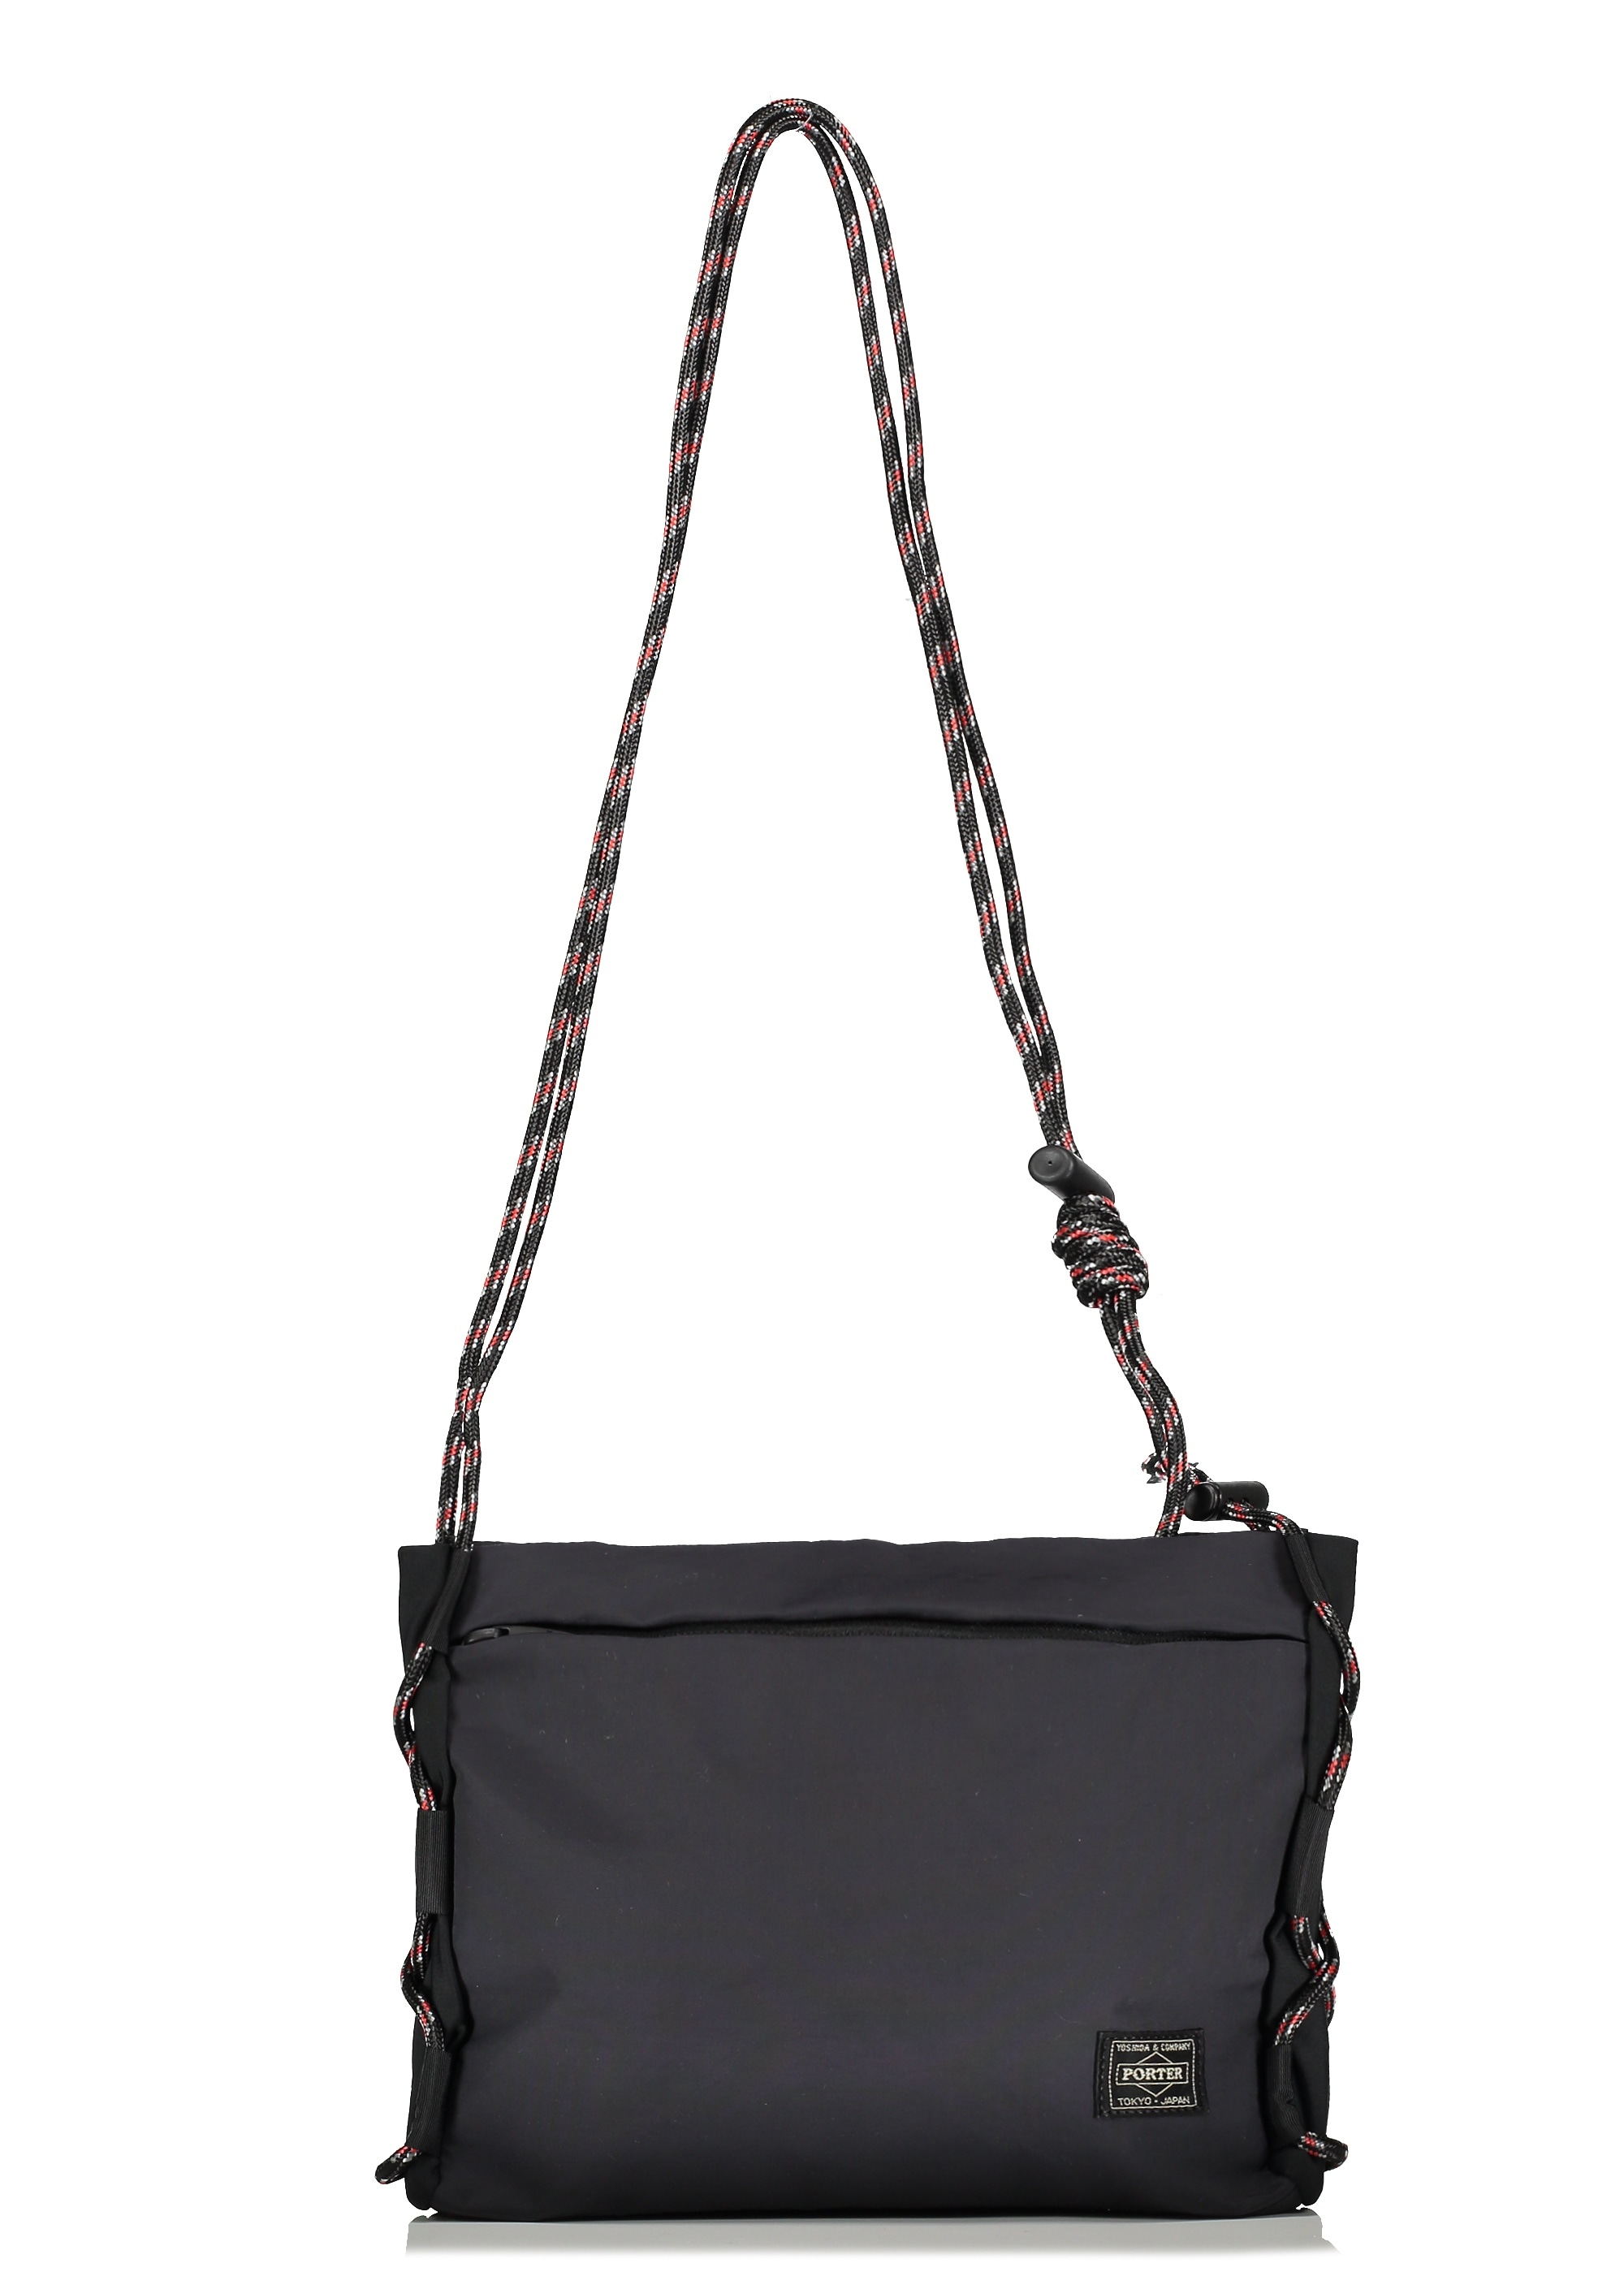 bee574c76898 White Mountaineering x Porter Musette Bag - Black - Bags from Triads UK